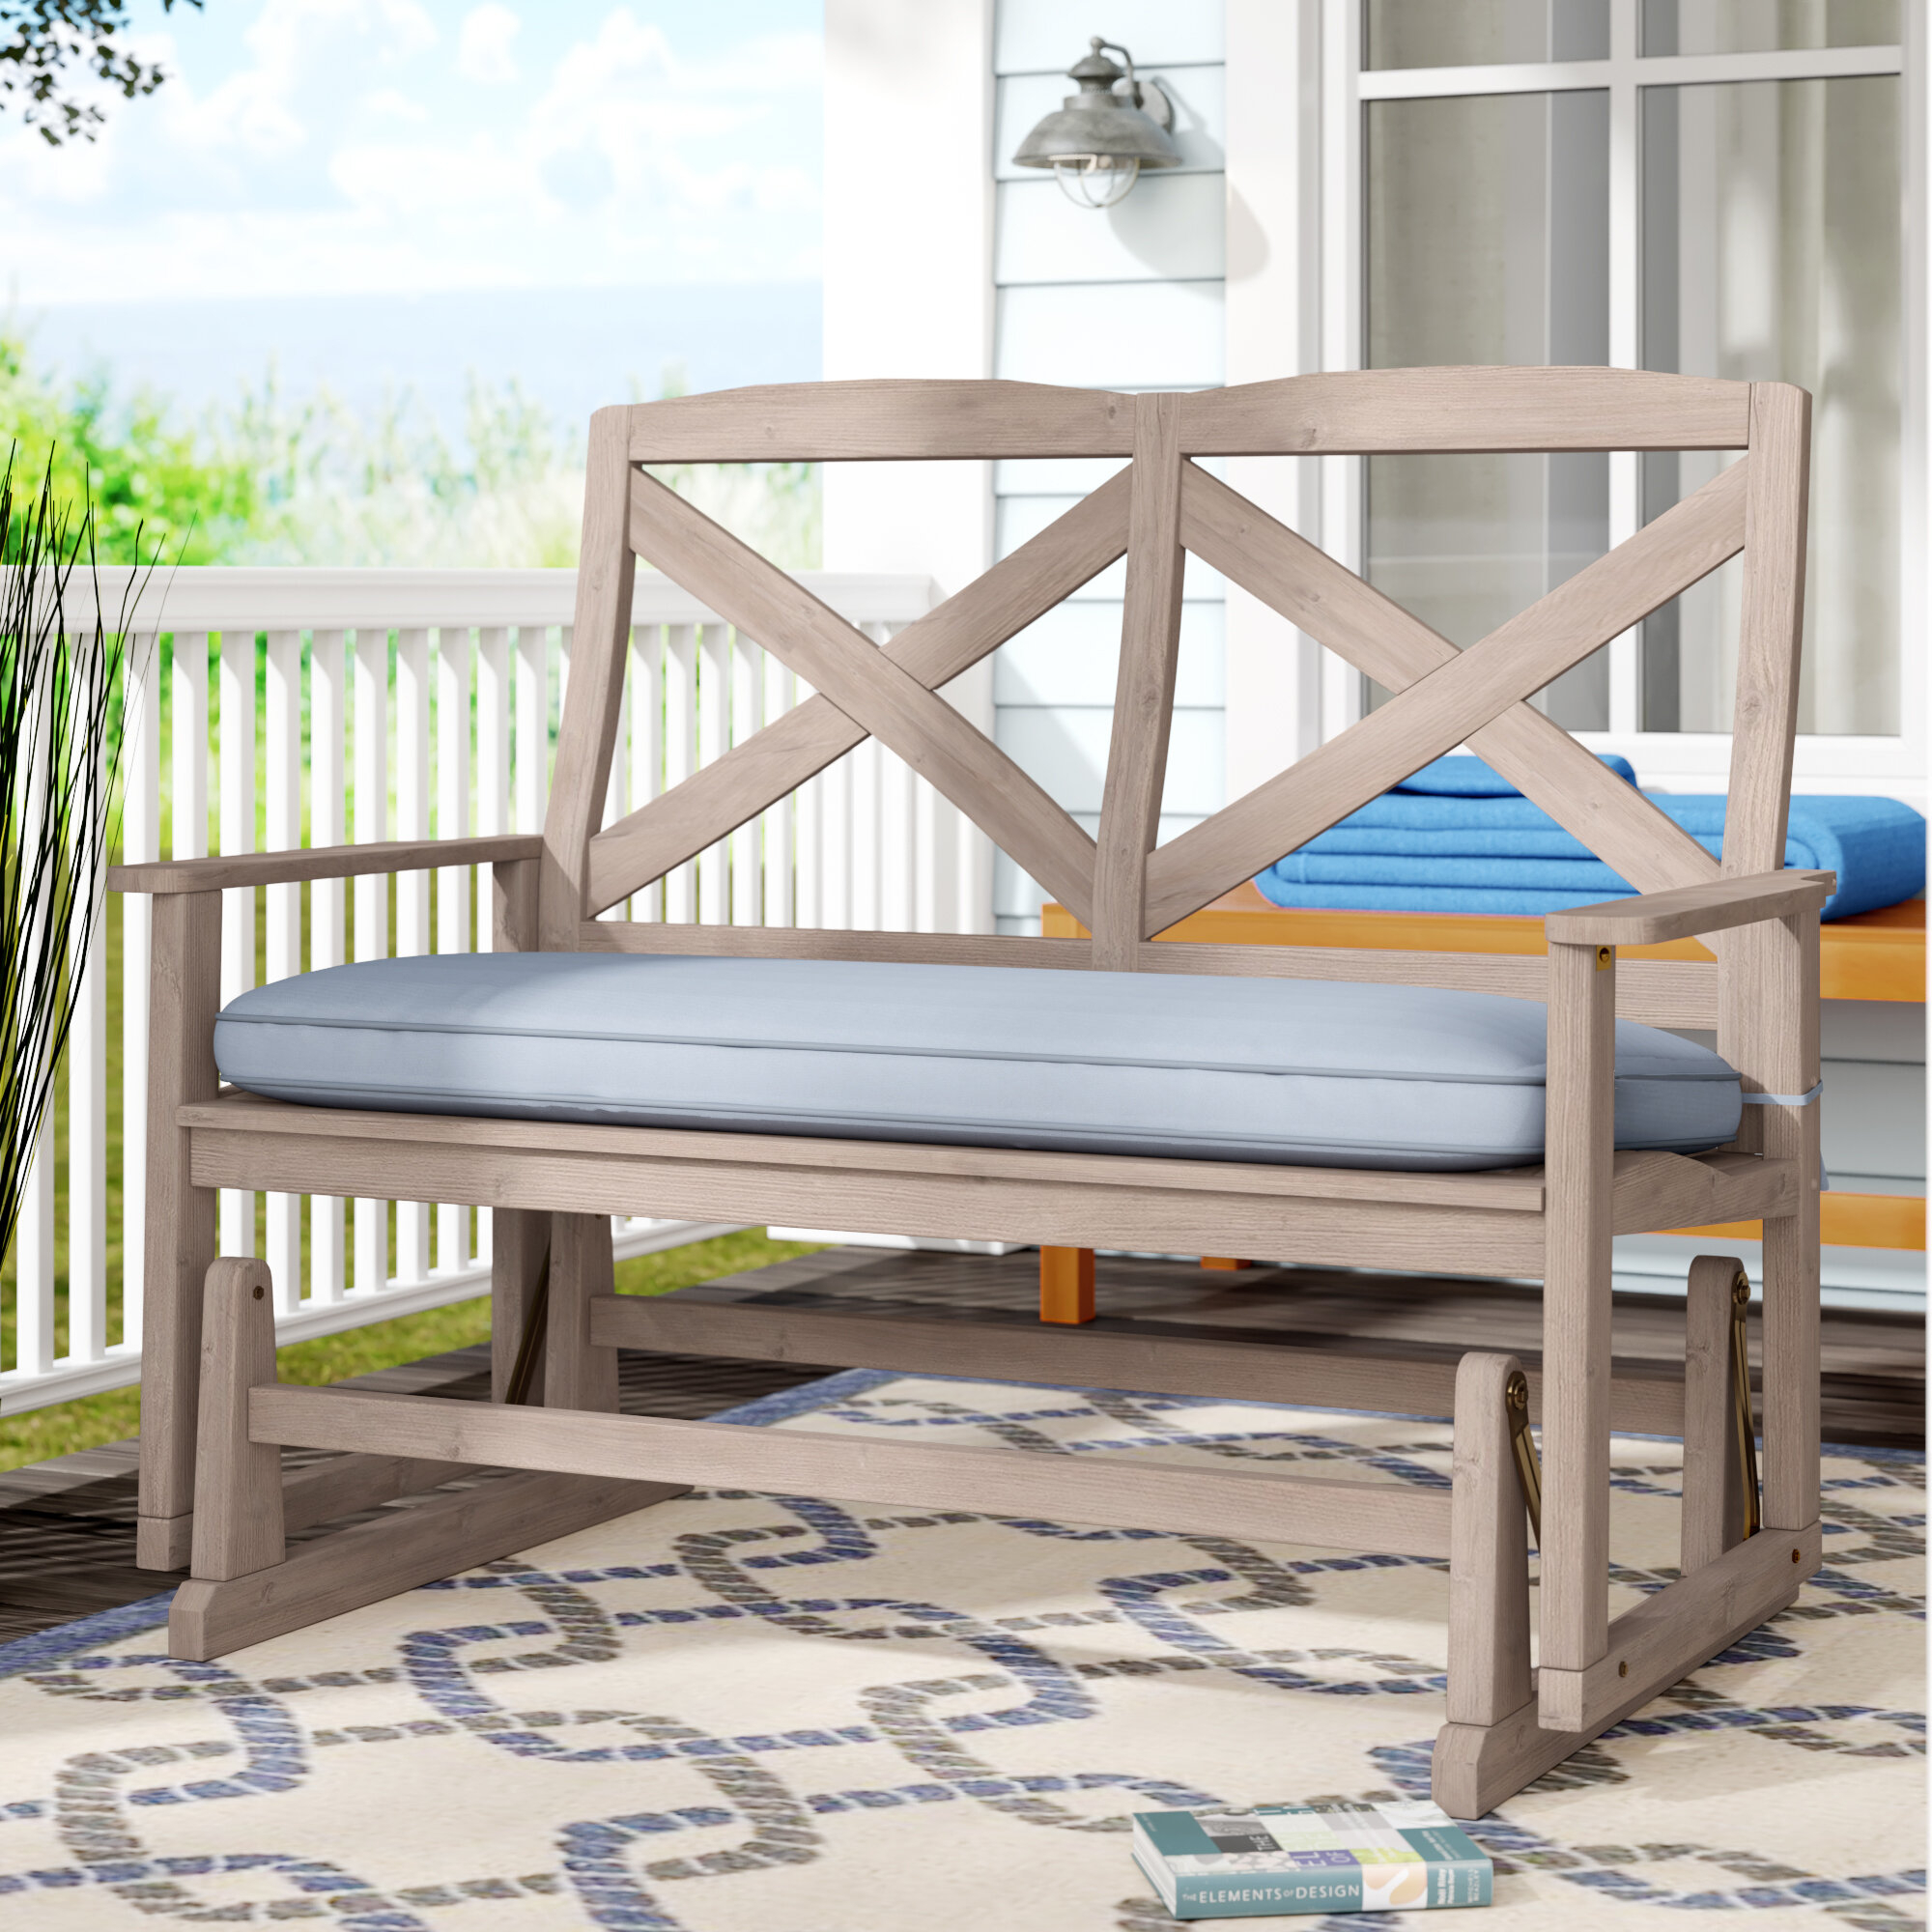 Beachcrest Home Englewood Glider Bench With Cushion Pertaining To Aluminum Glider Benches With Cushion (View 21 of 25)